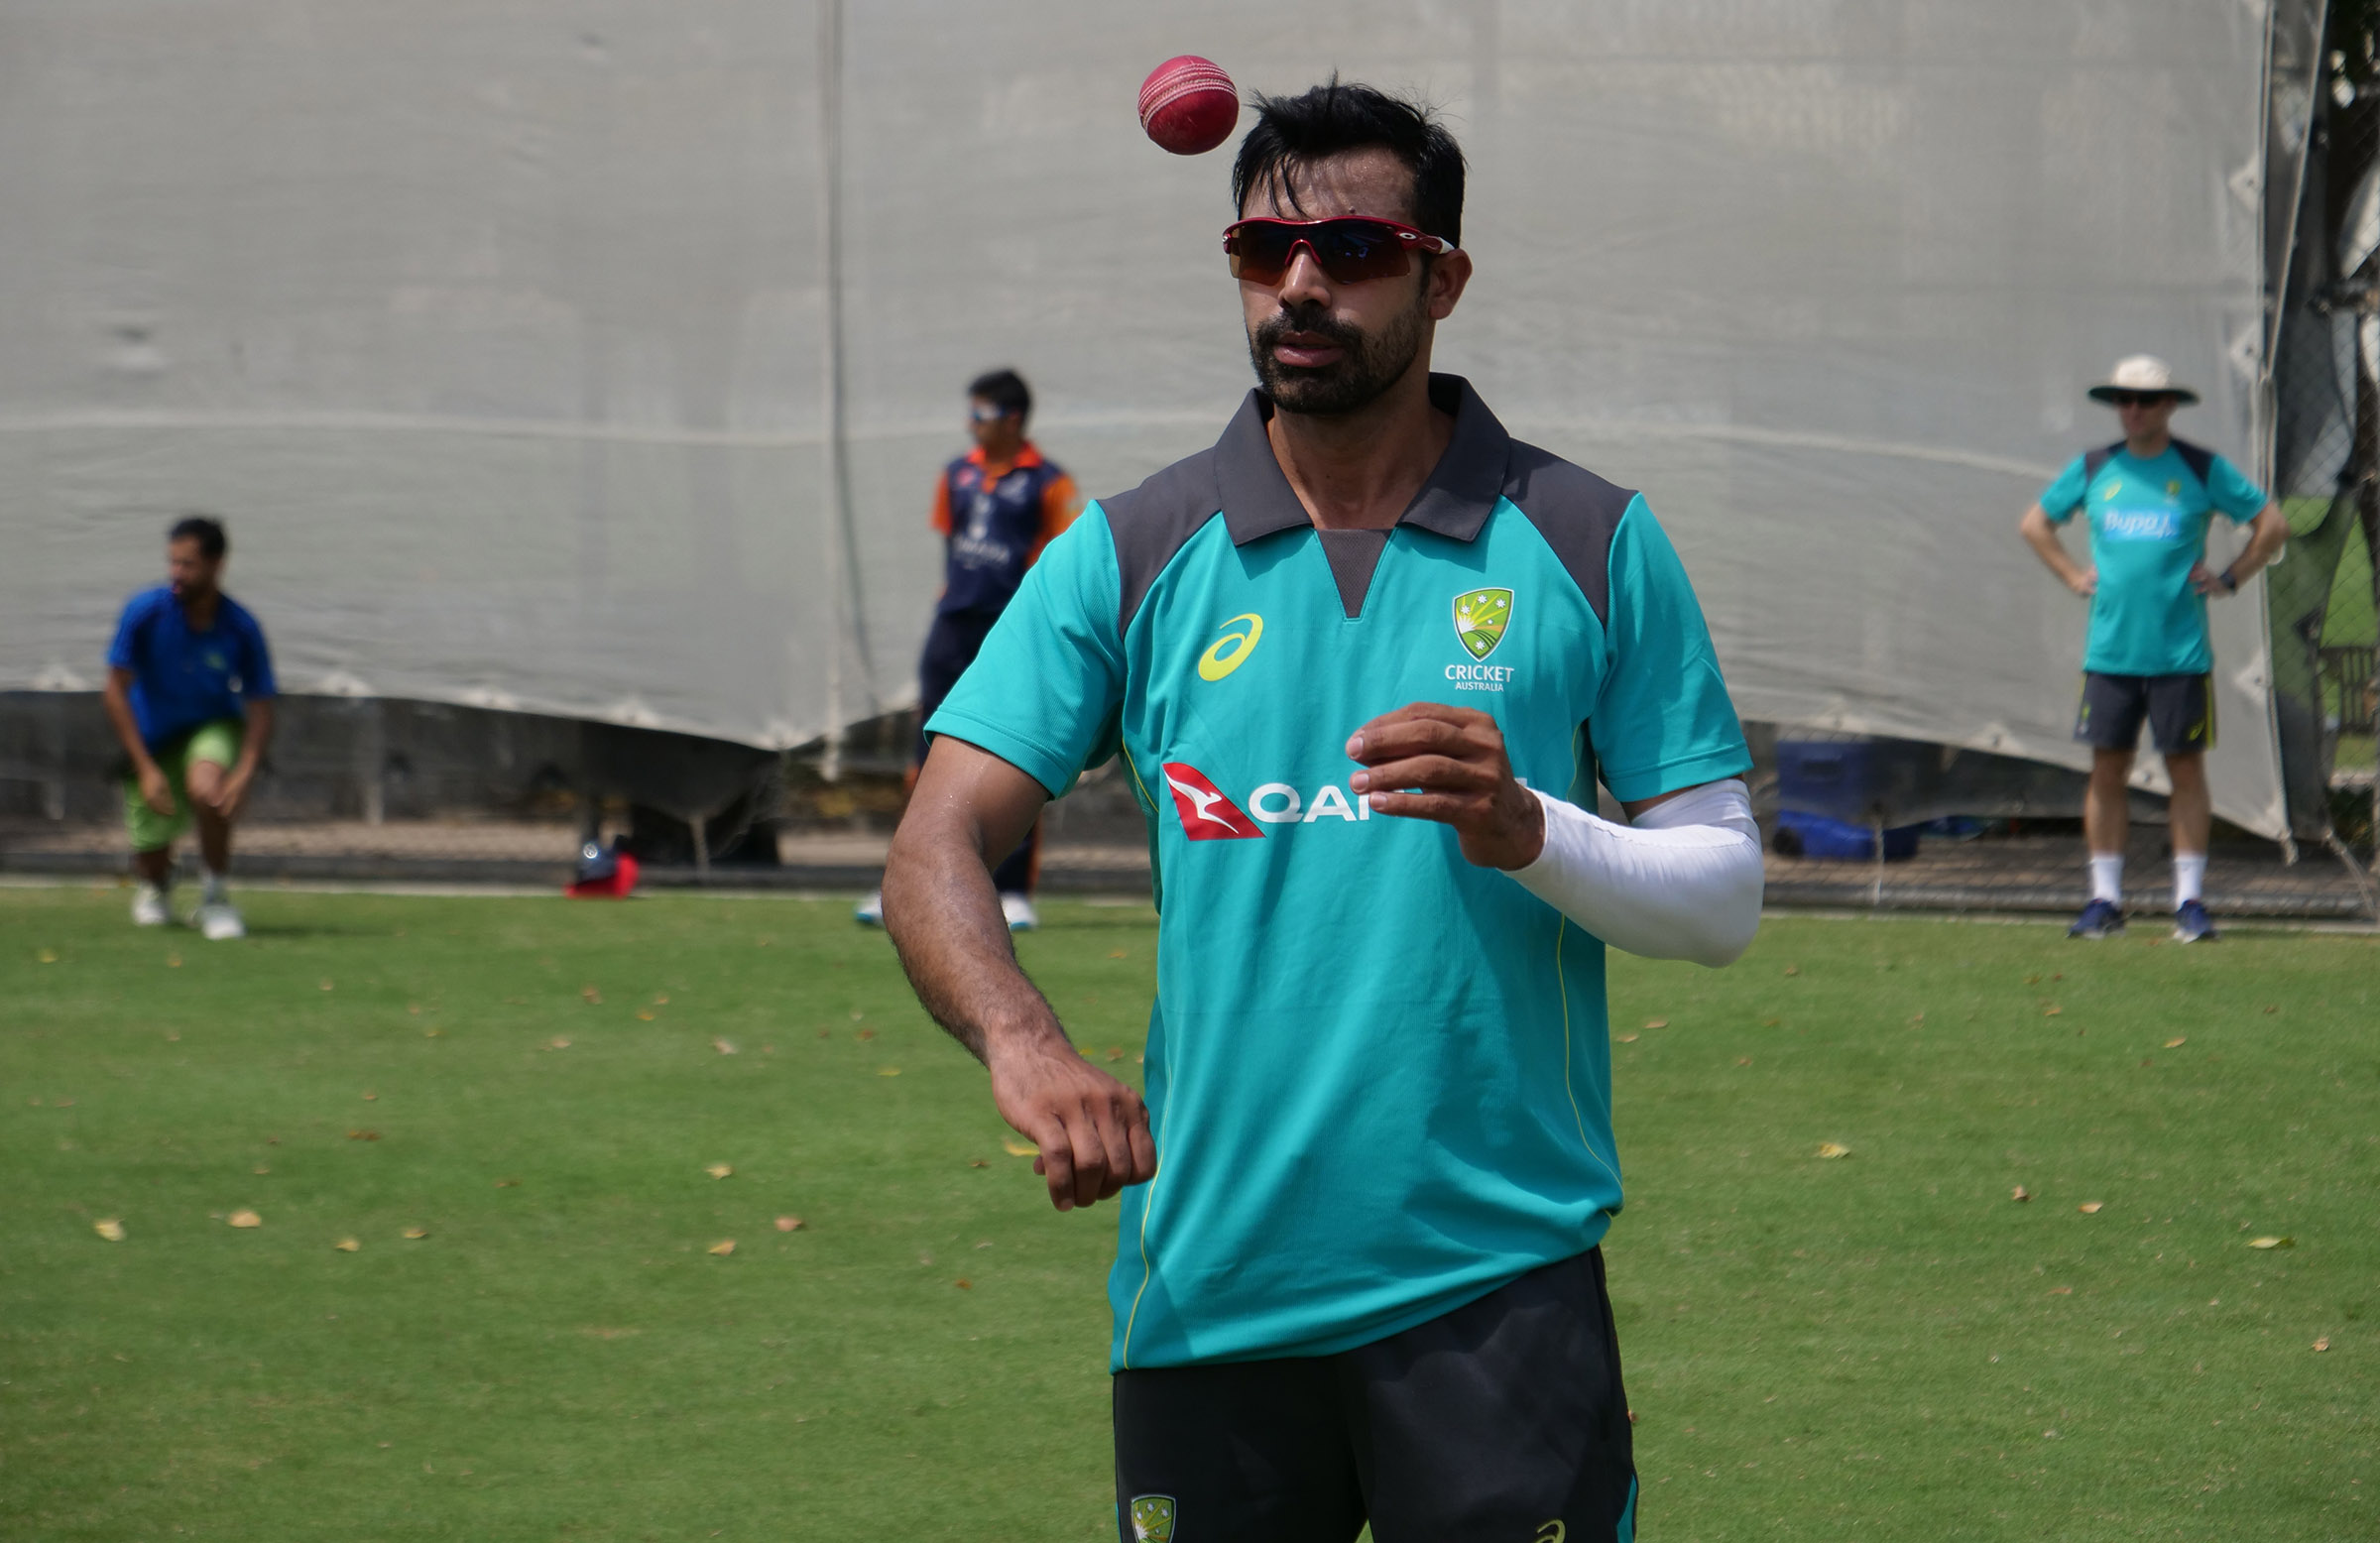 Indian wrist spinner Pardeep Sahu is training with the Australians // cricket.com.au